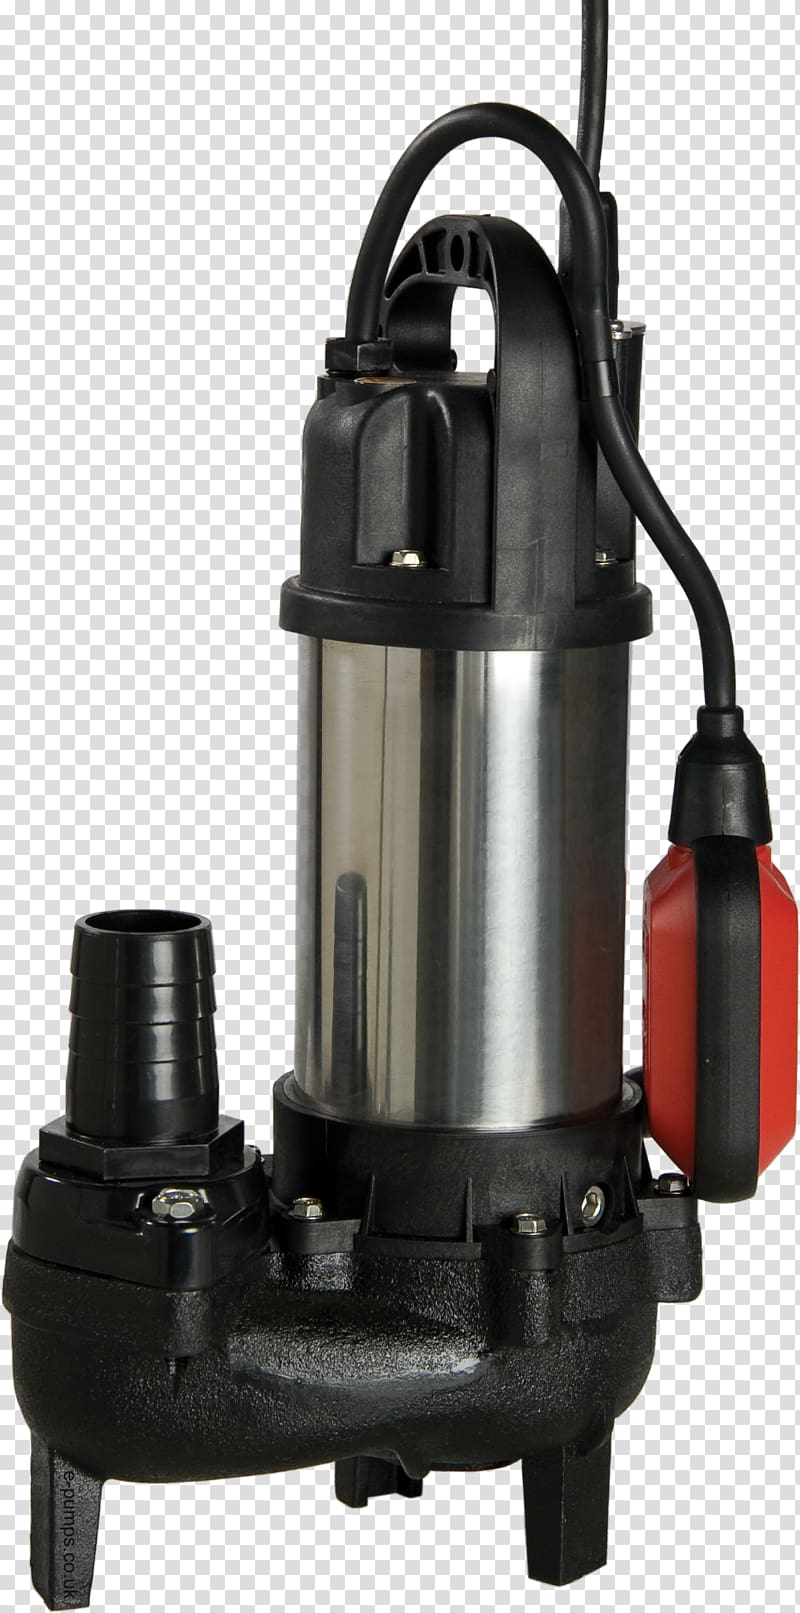 Sewage pump clipart graphic library download Submersible pump Sewage pumping Drainage, submersible ... graphic library download